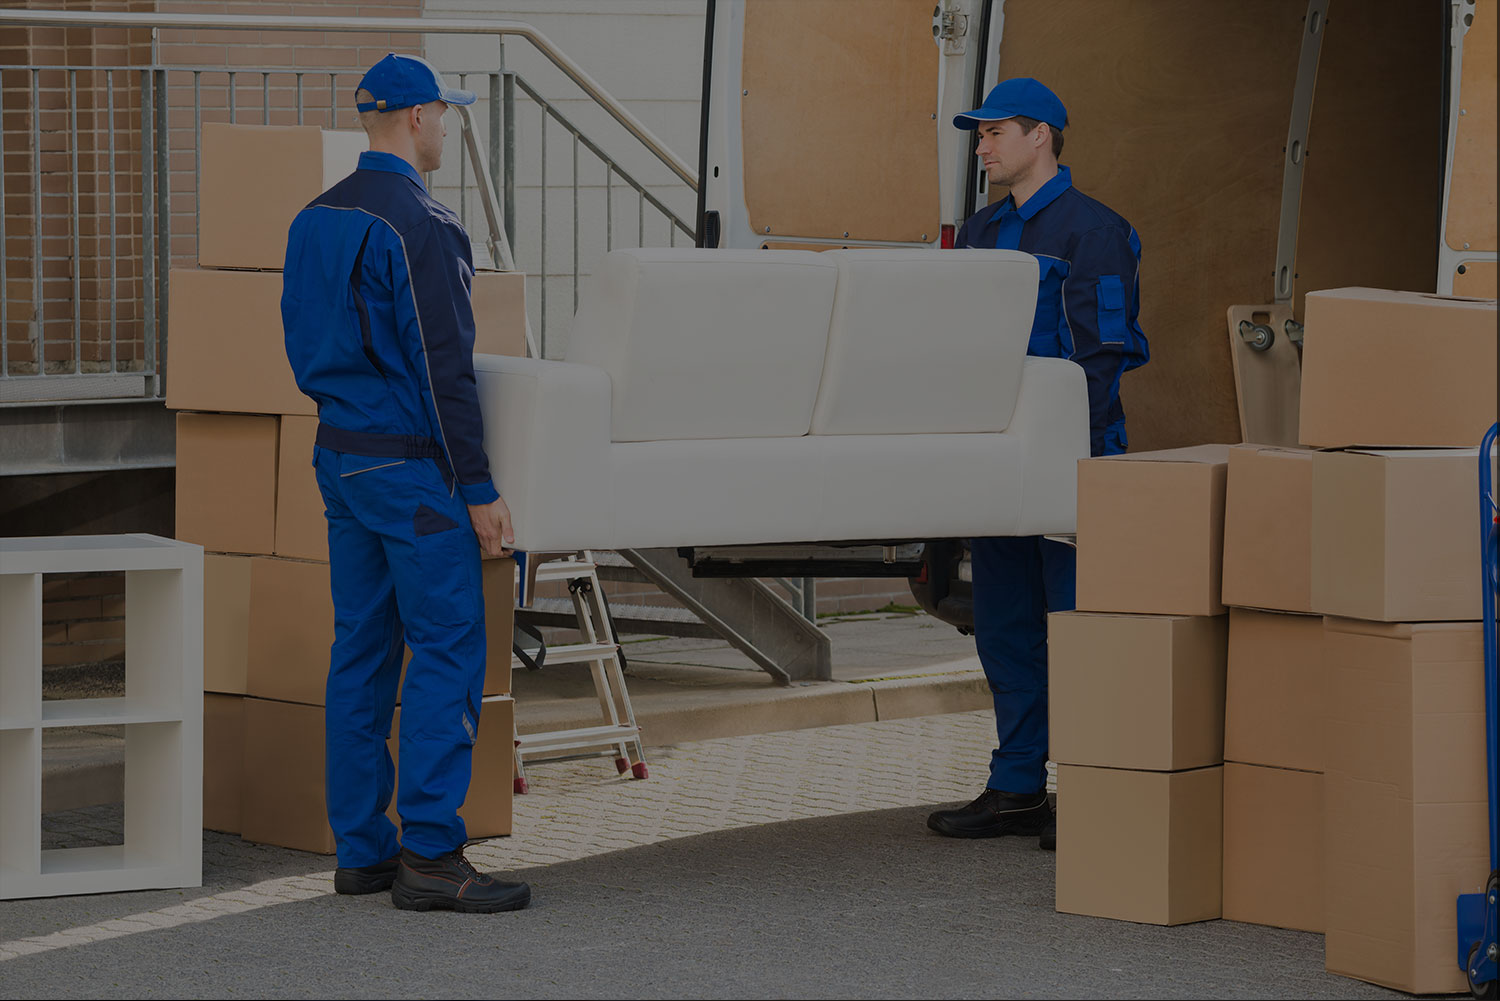 DT Express Moving Company - Do you need an estimate from a Sleepy Hollow NY moving company? We have 25 years of experience, DT Express would be happy to provide you with a competitSleepy Hollow moving company